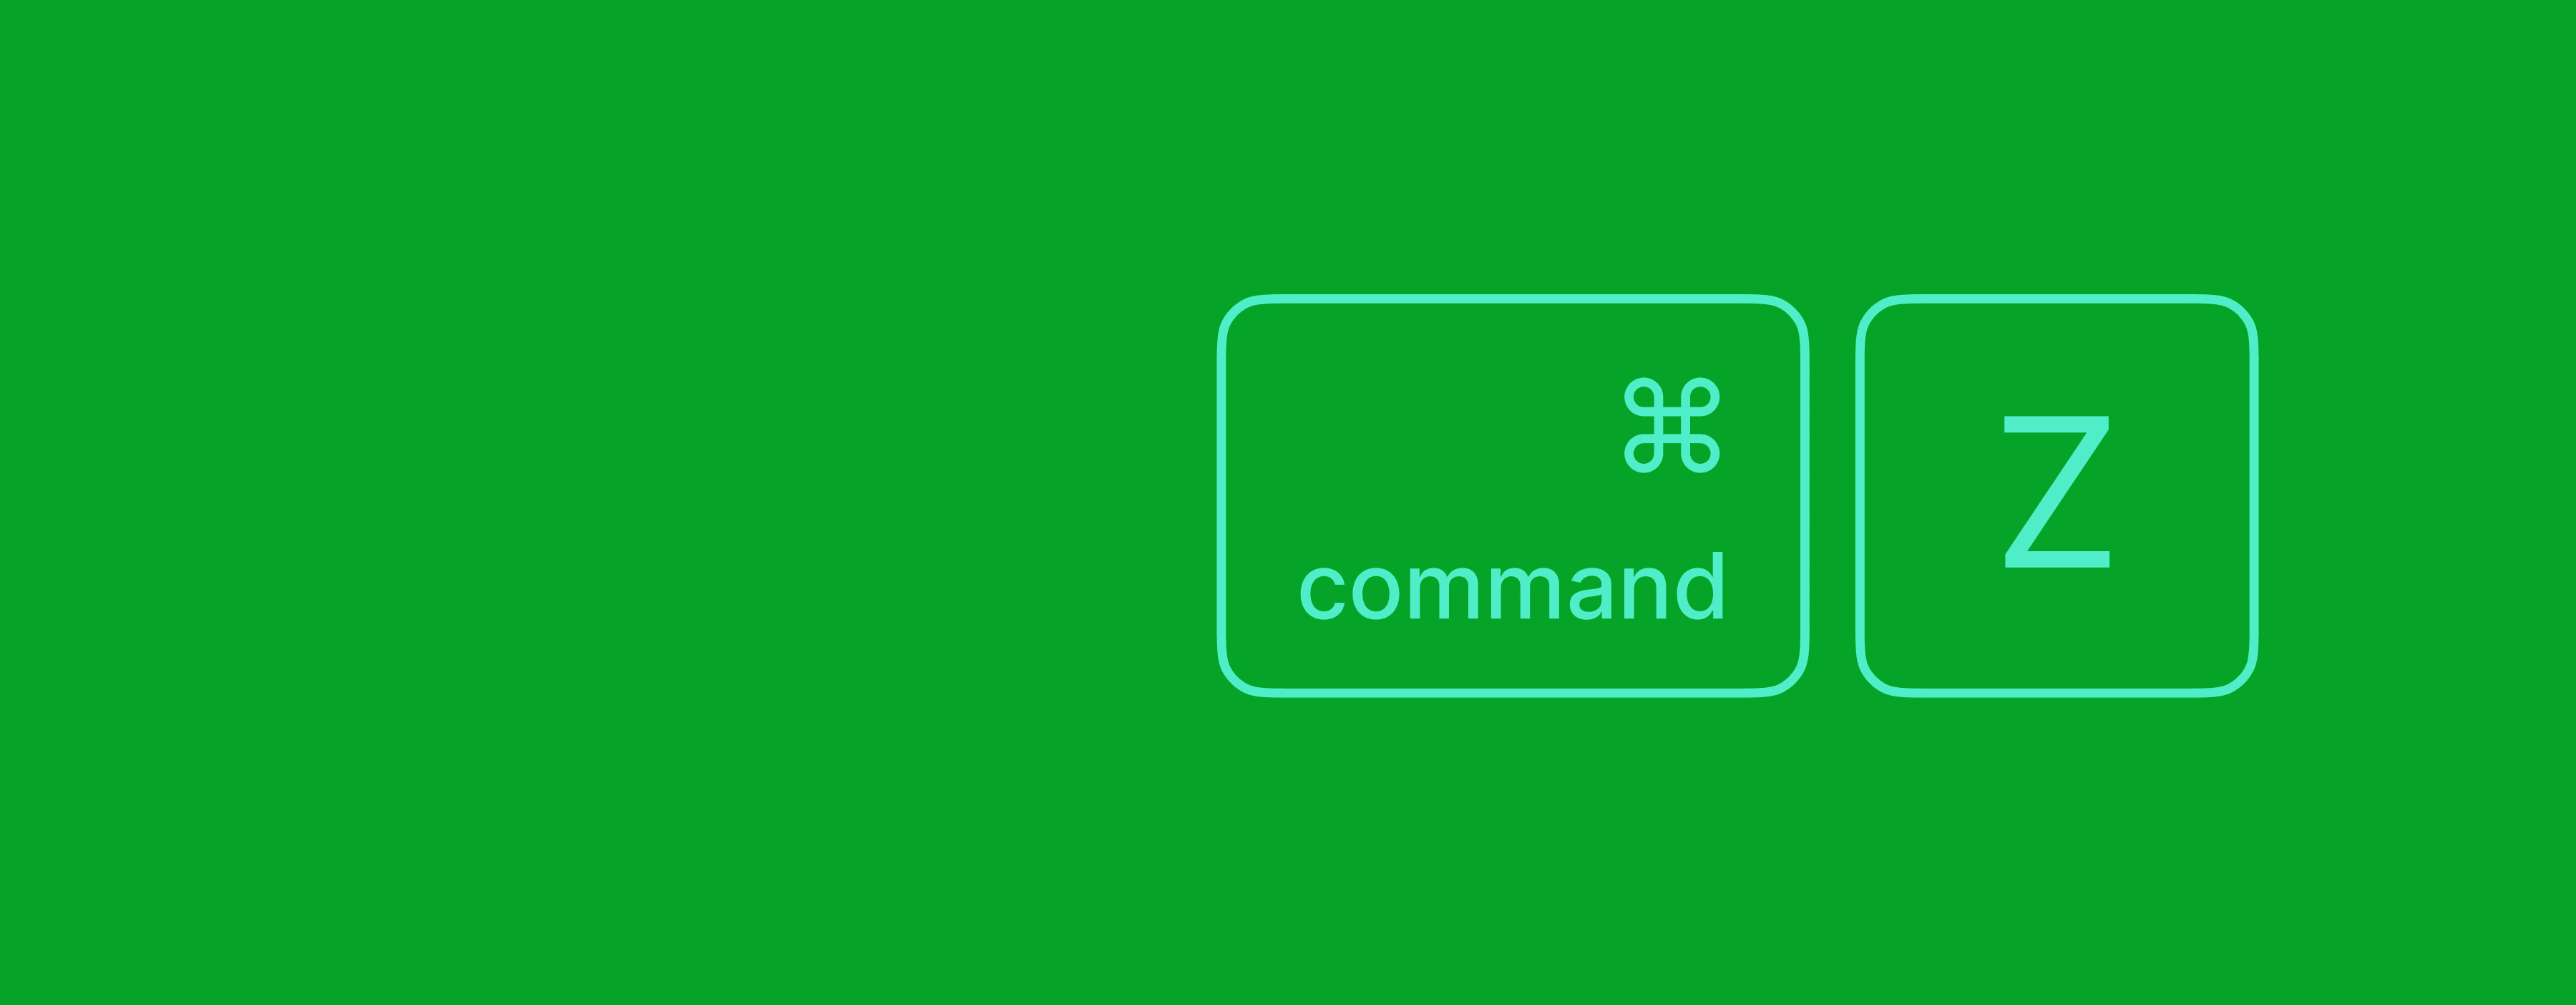 Command + Z keyboard diagram